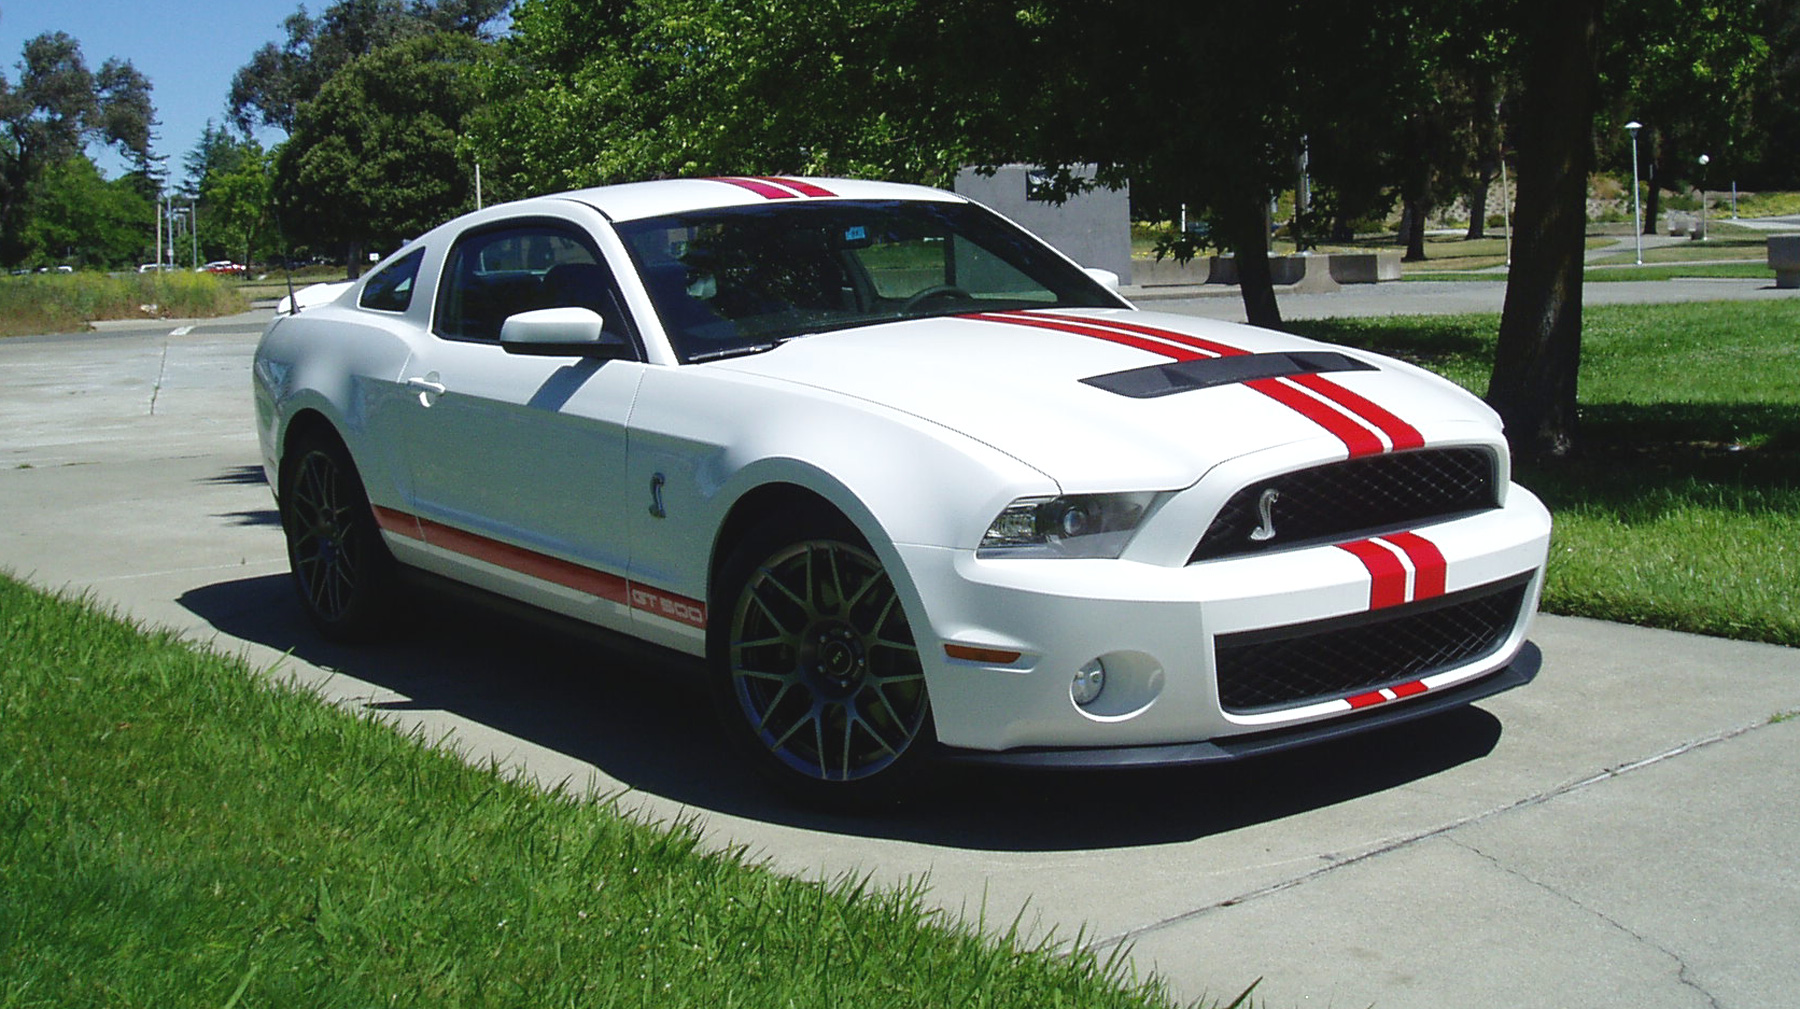 2011 Ford Mustang Shelby GT500 photo - 1